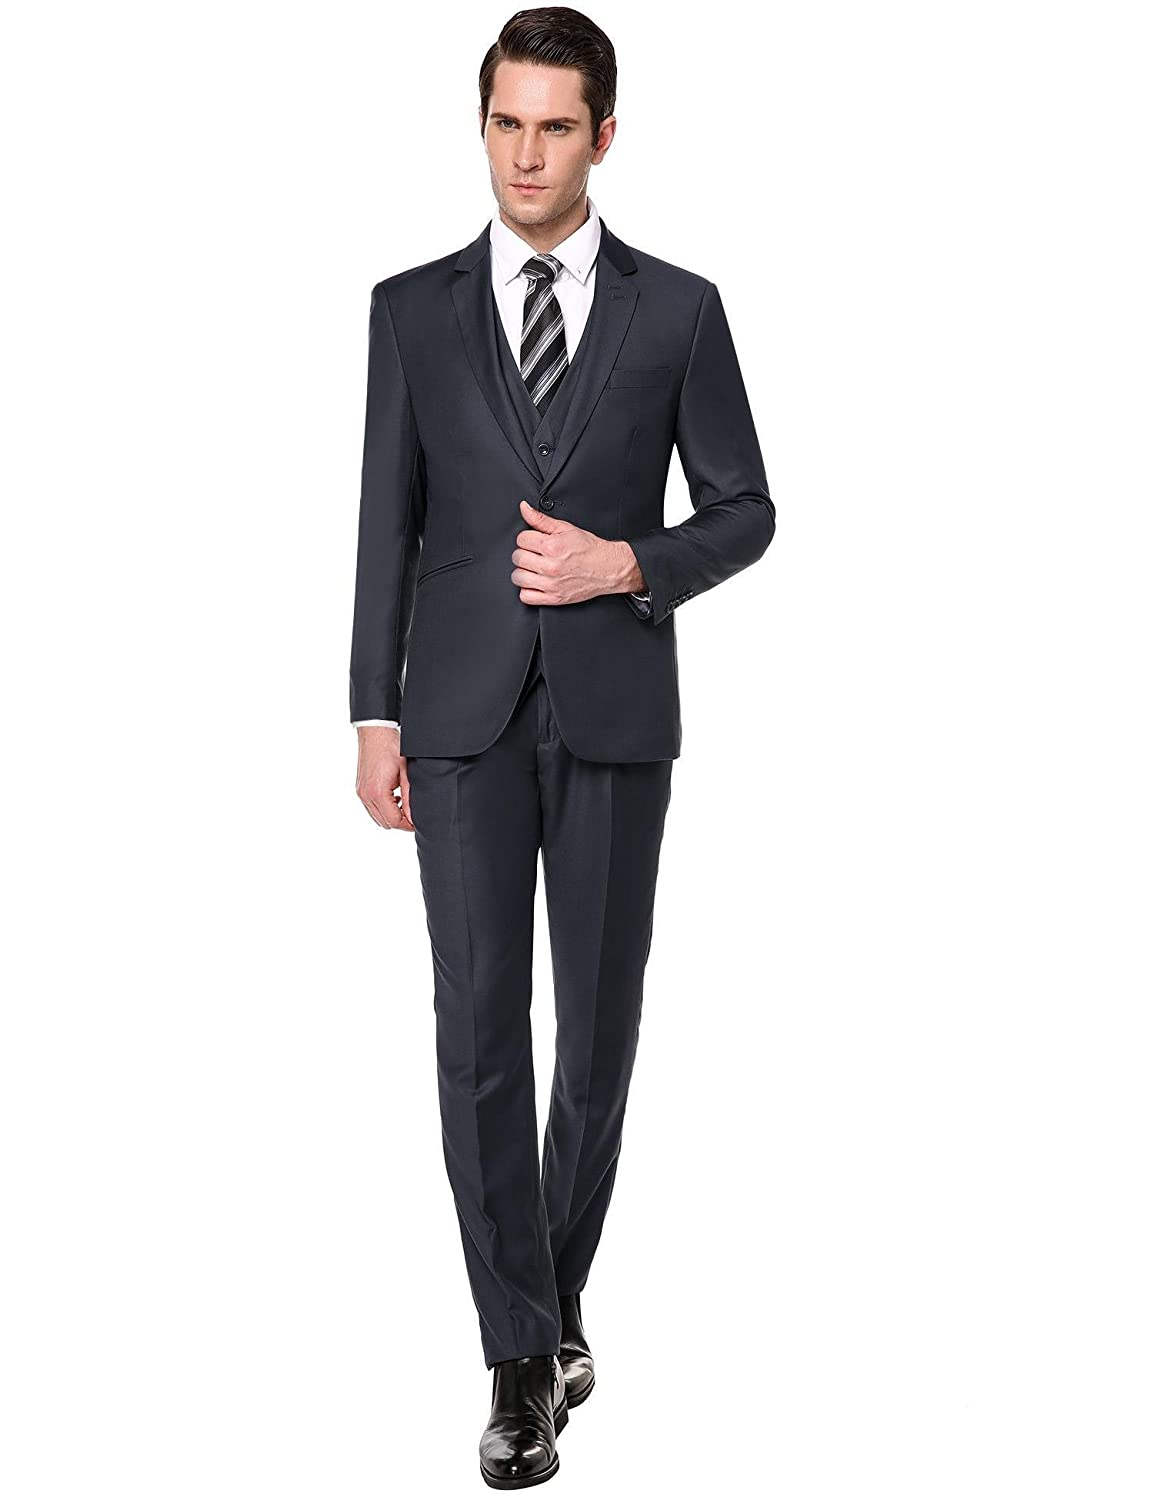 fddf8672df96 Elever Dress Suits for Men Men's Suit Separates Royal Blue Suit Dark Gray Brown  Suits at Amazon Men's Clothing store: